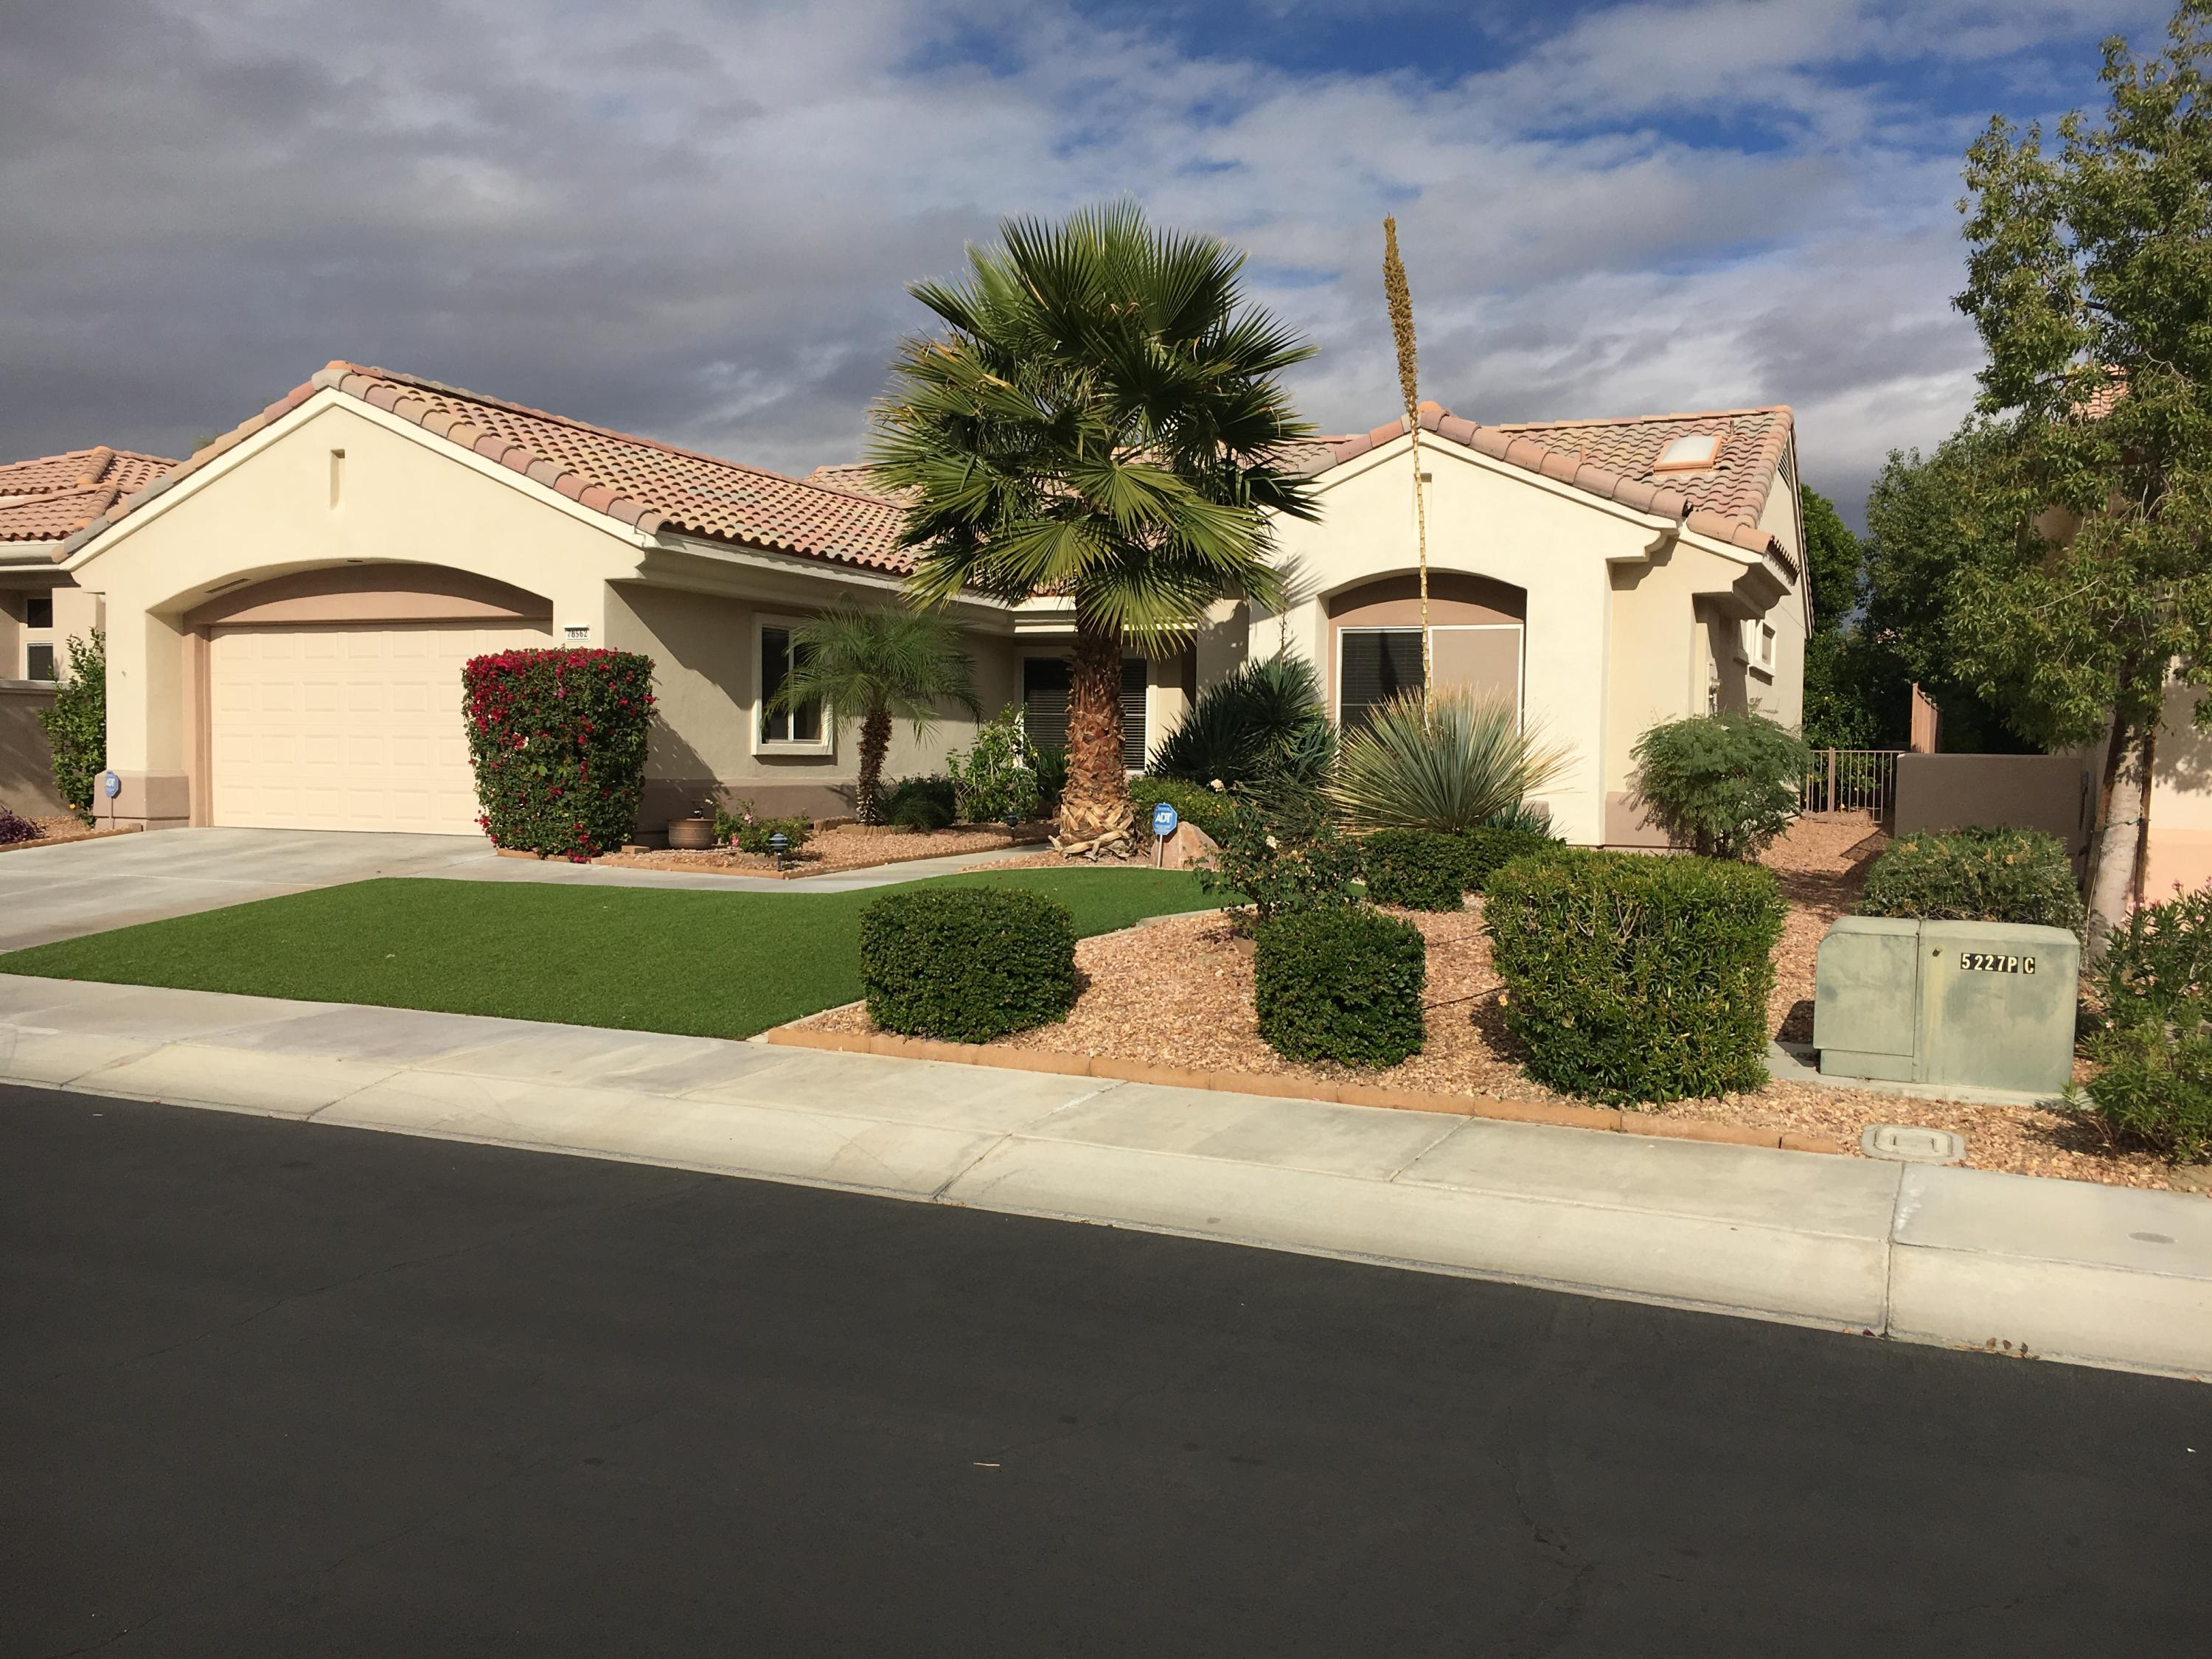 Photo of 78562 Waterfall Drive, Palm Desert, CA 92211